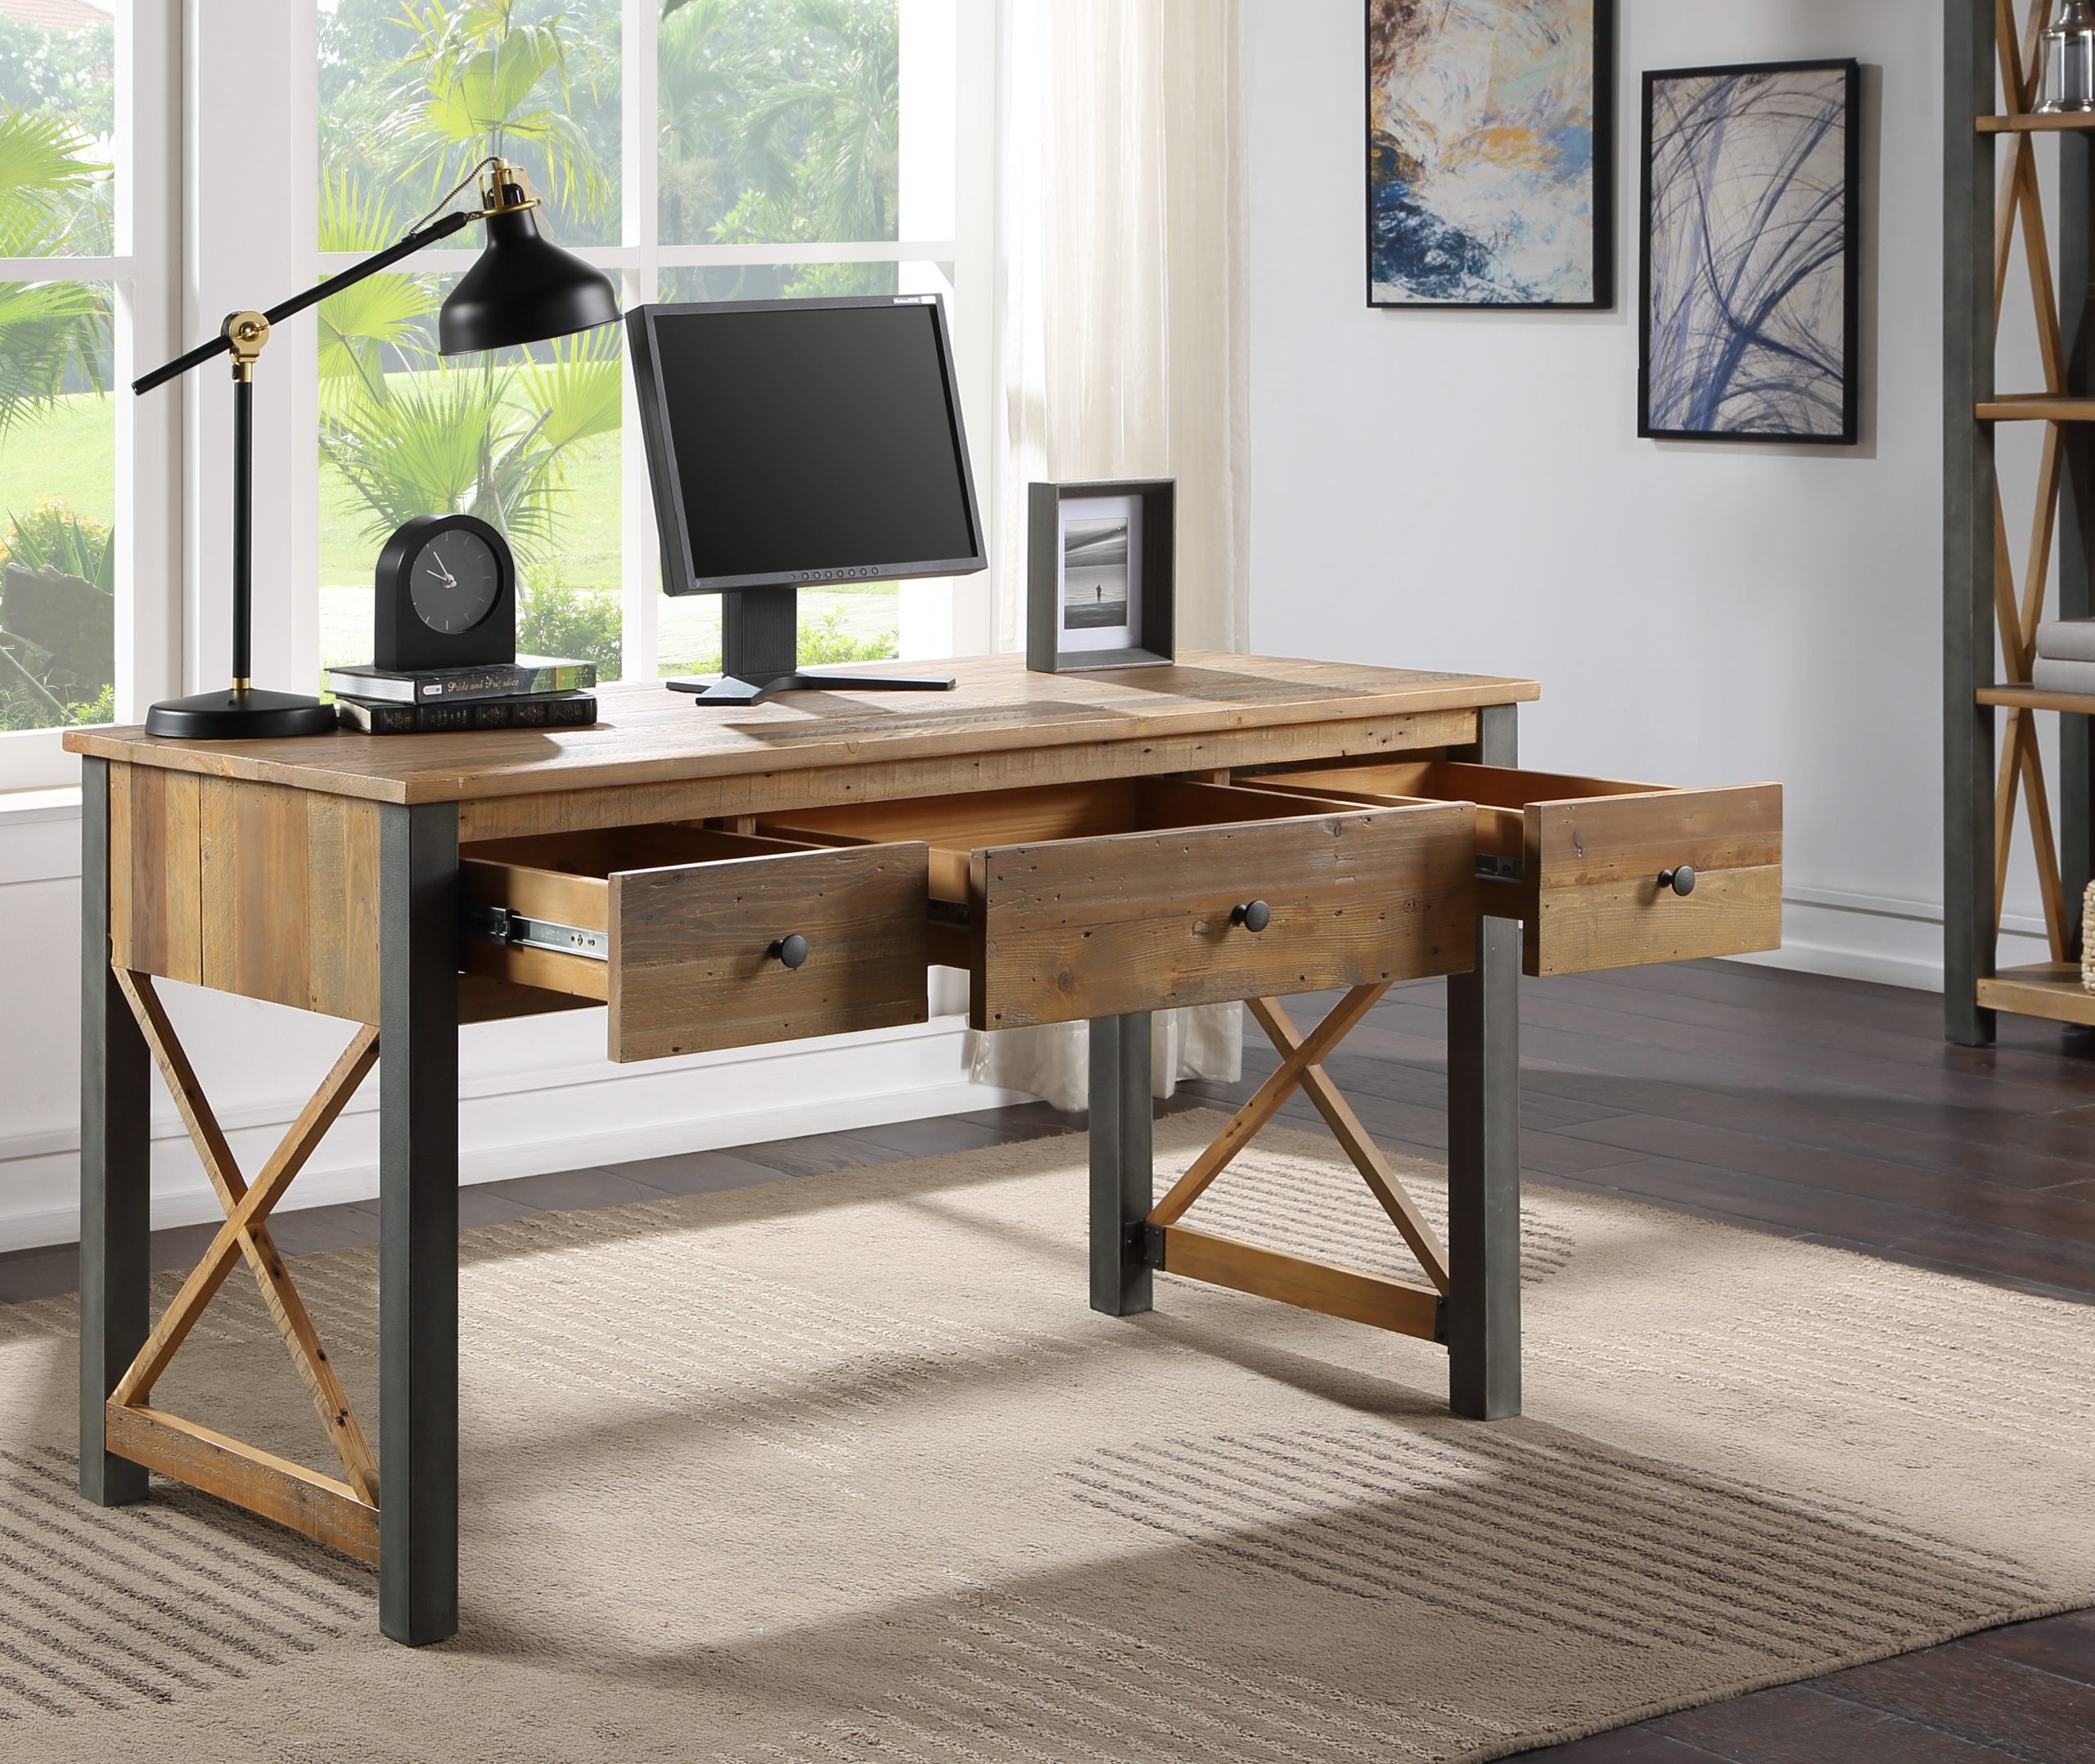 recycled wood three-drawer desk ... or dressing table